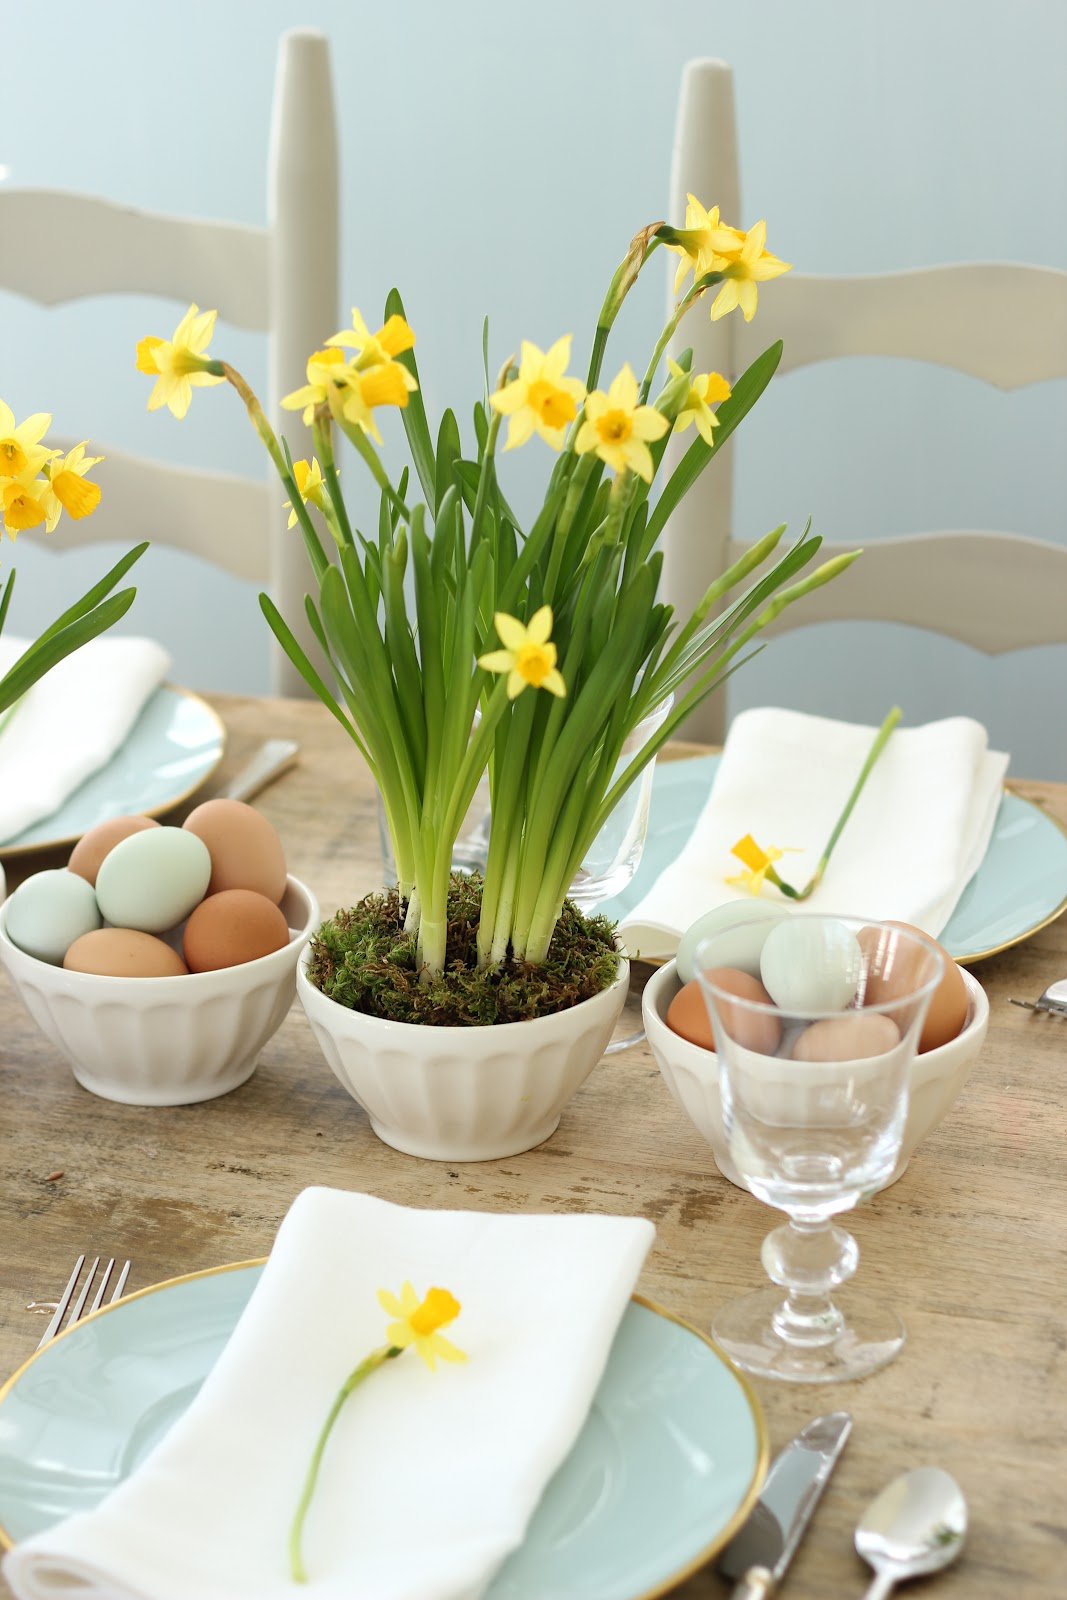 Jenny steffens hobick easter brunch ideas brunch menu Brunch table decorations